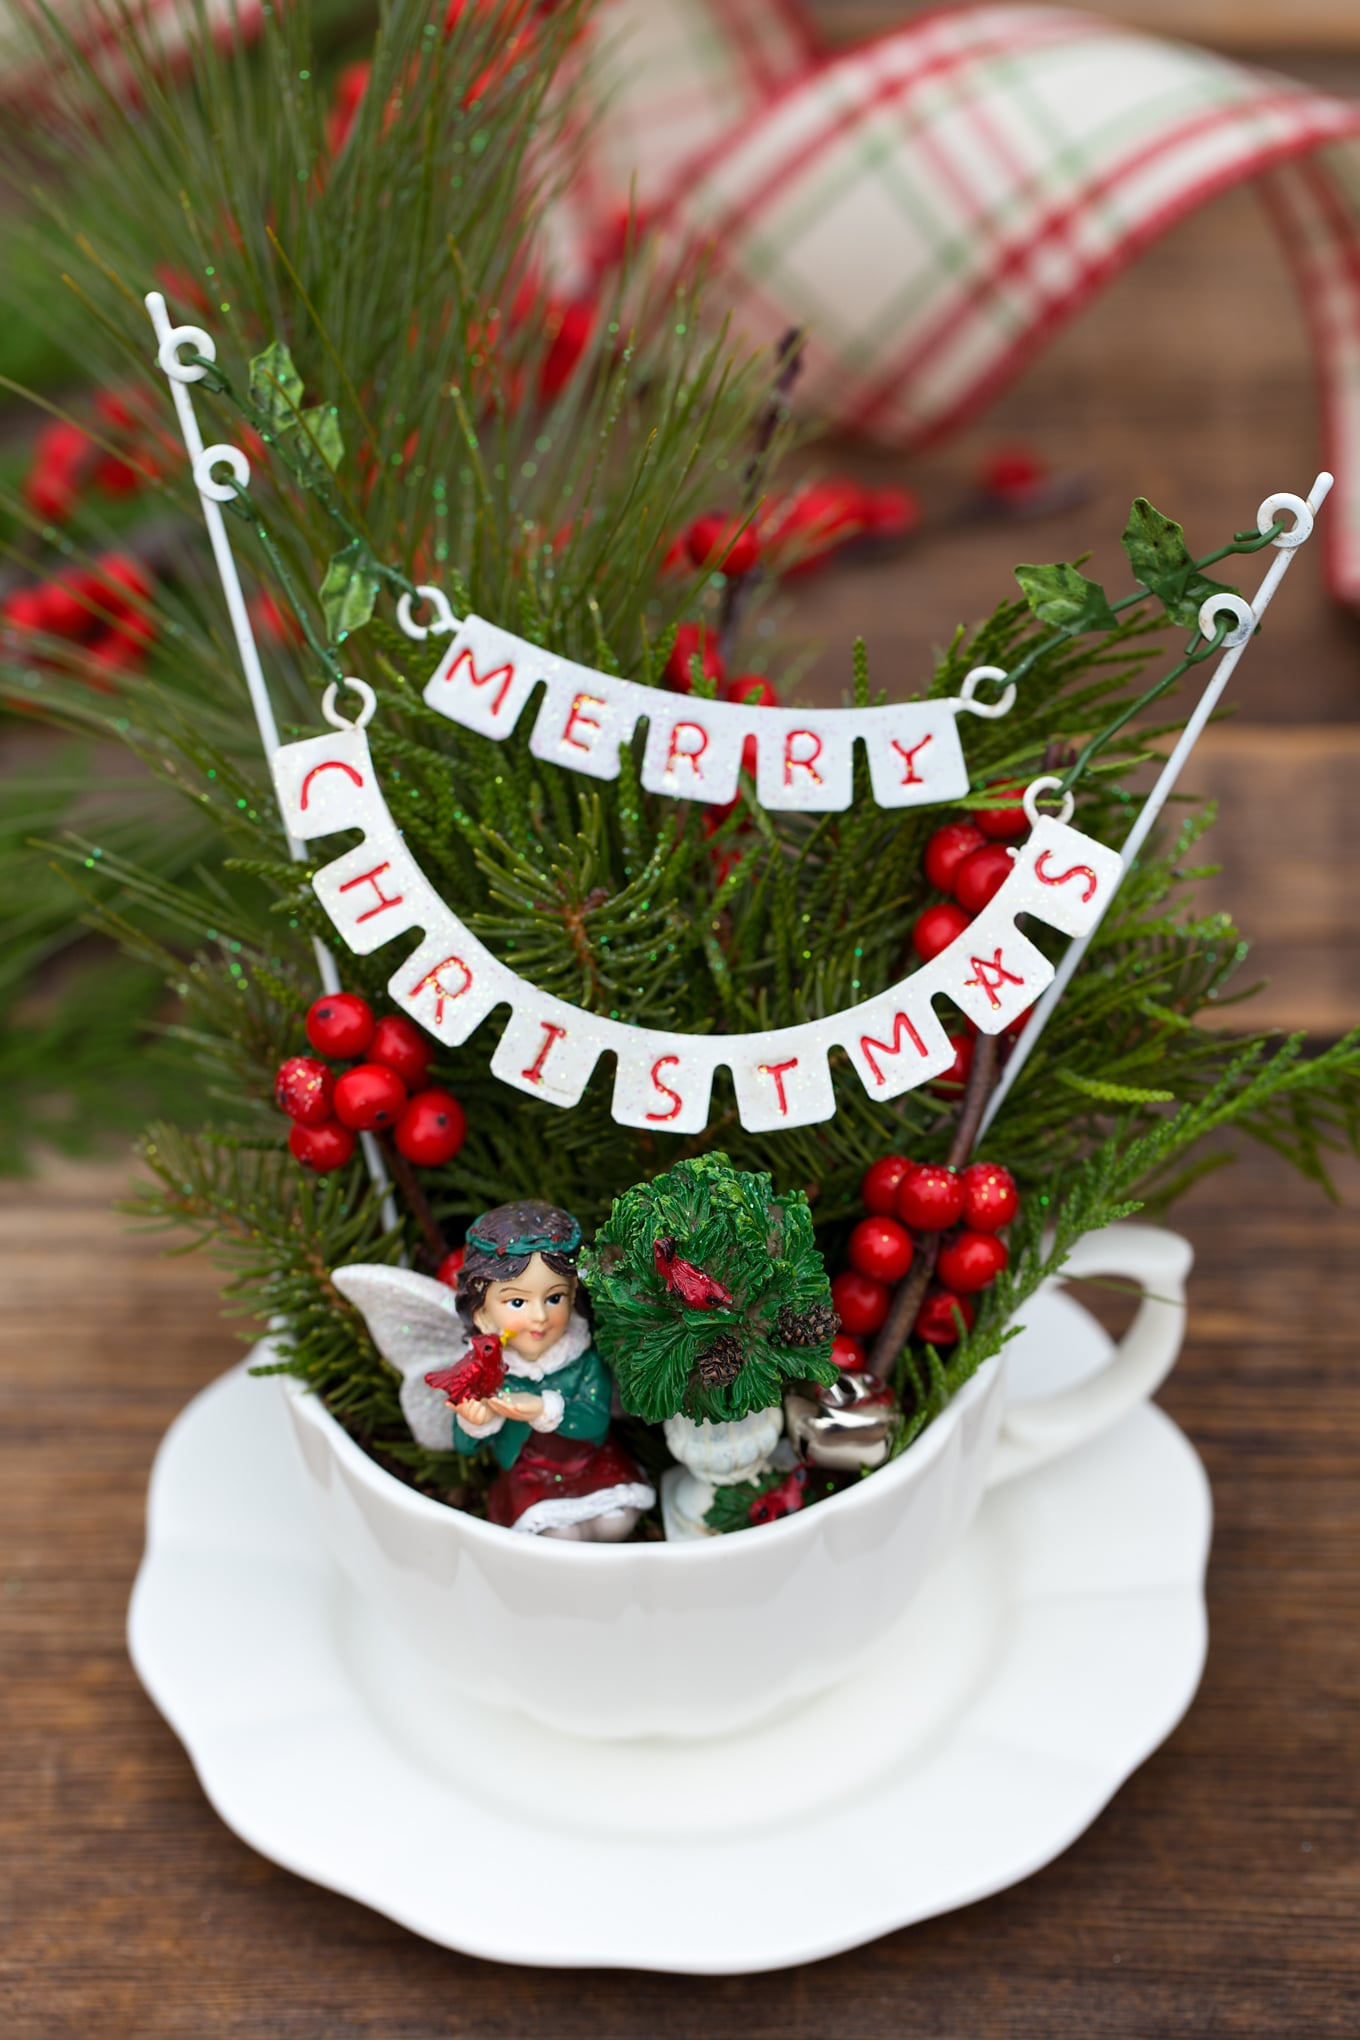 How to Make an Adorable Christmas Teacup Garden